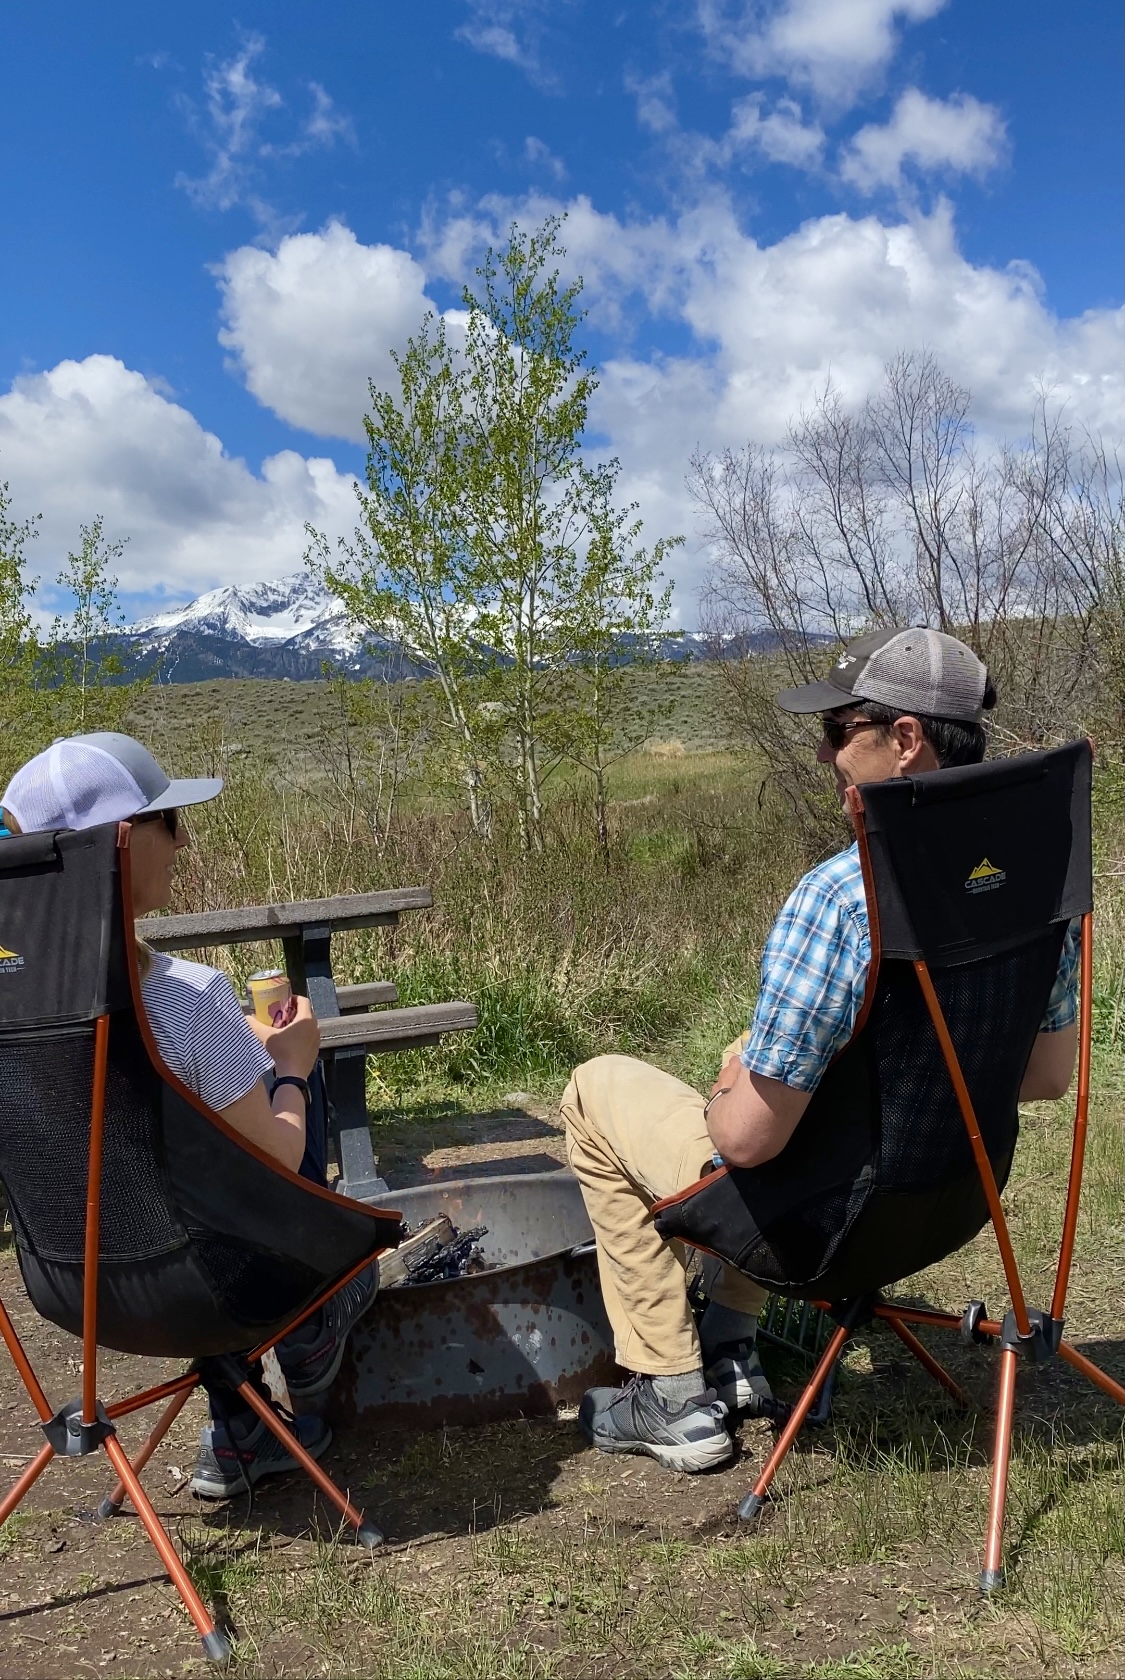 two people sitting in chairs around a campfire on a camping trip near Yellowstone